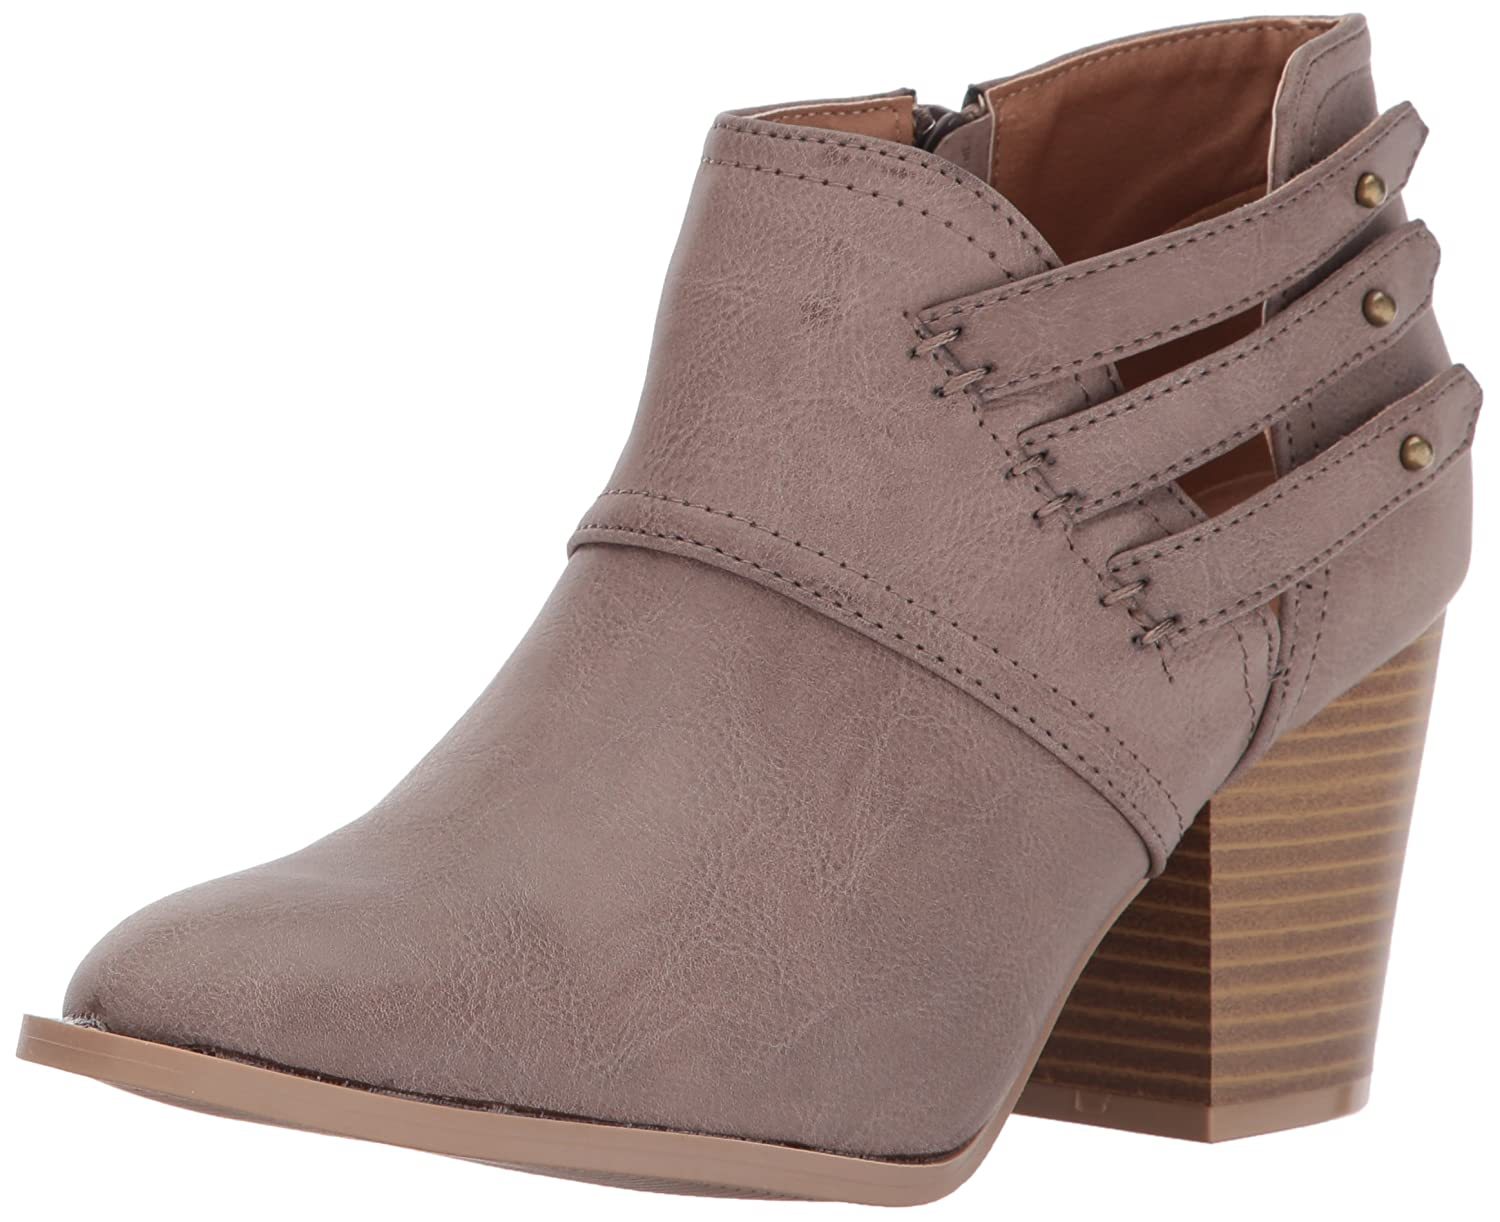 Qupid Women's Prenton-10 Ankle Bootie B06ZYL86MV 5.5 B(M) US|Taupe Burnish Polyurethane